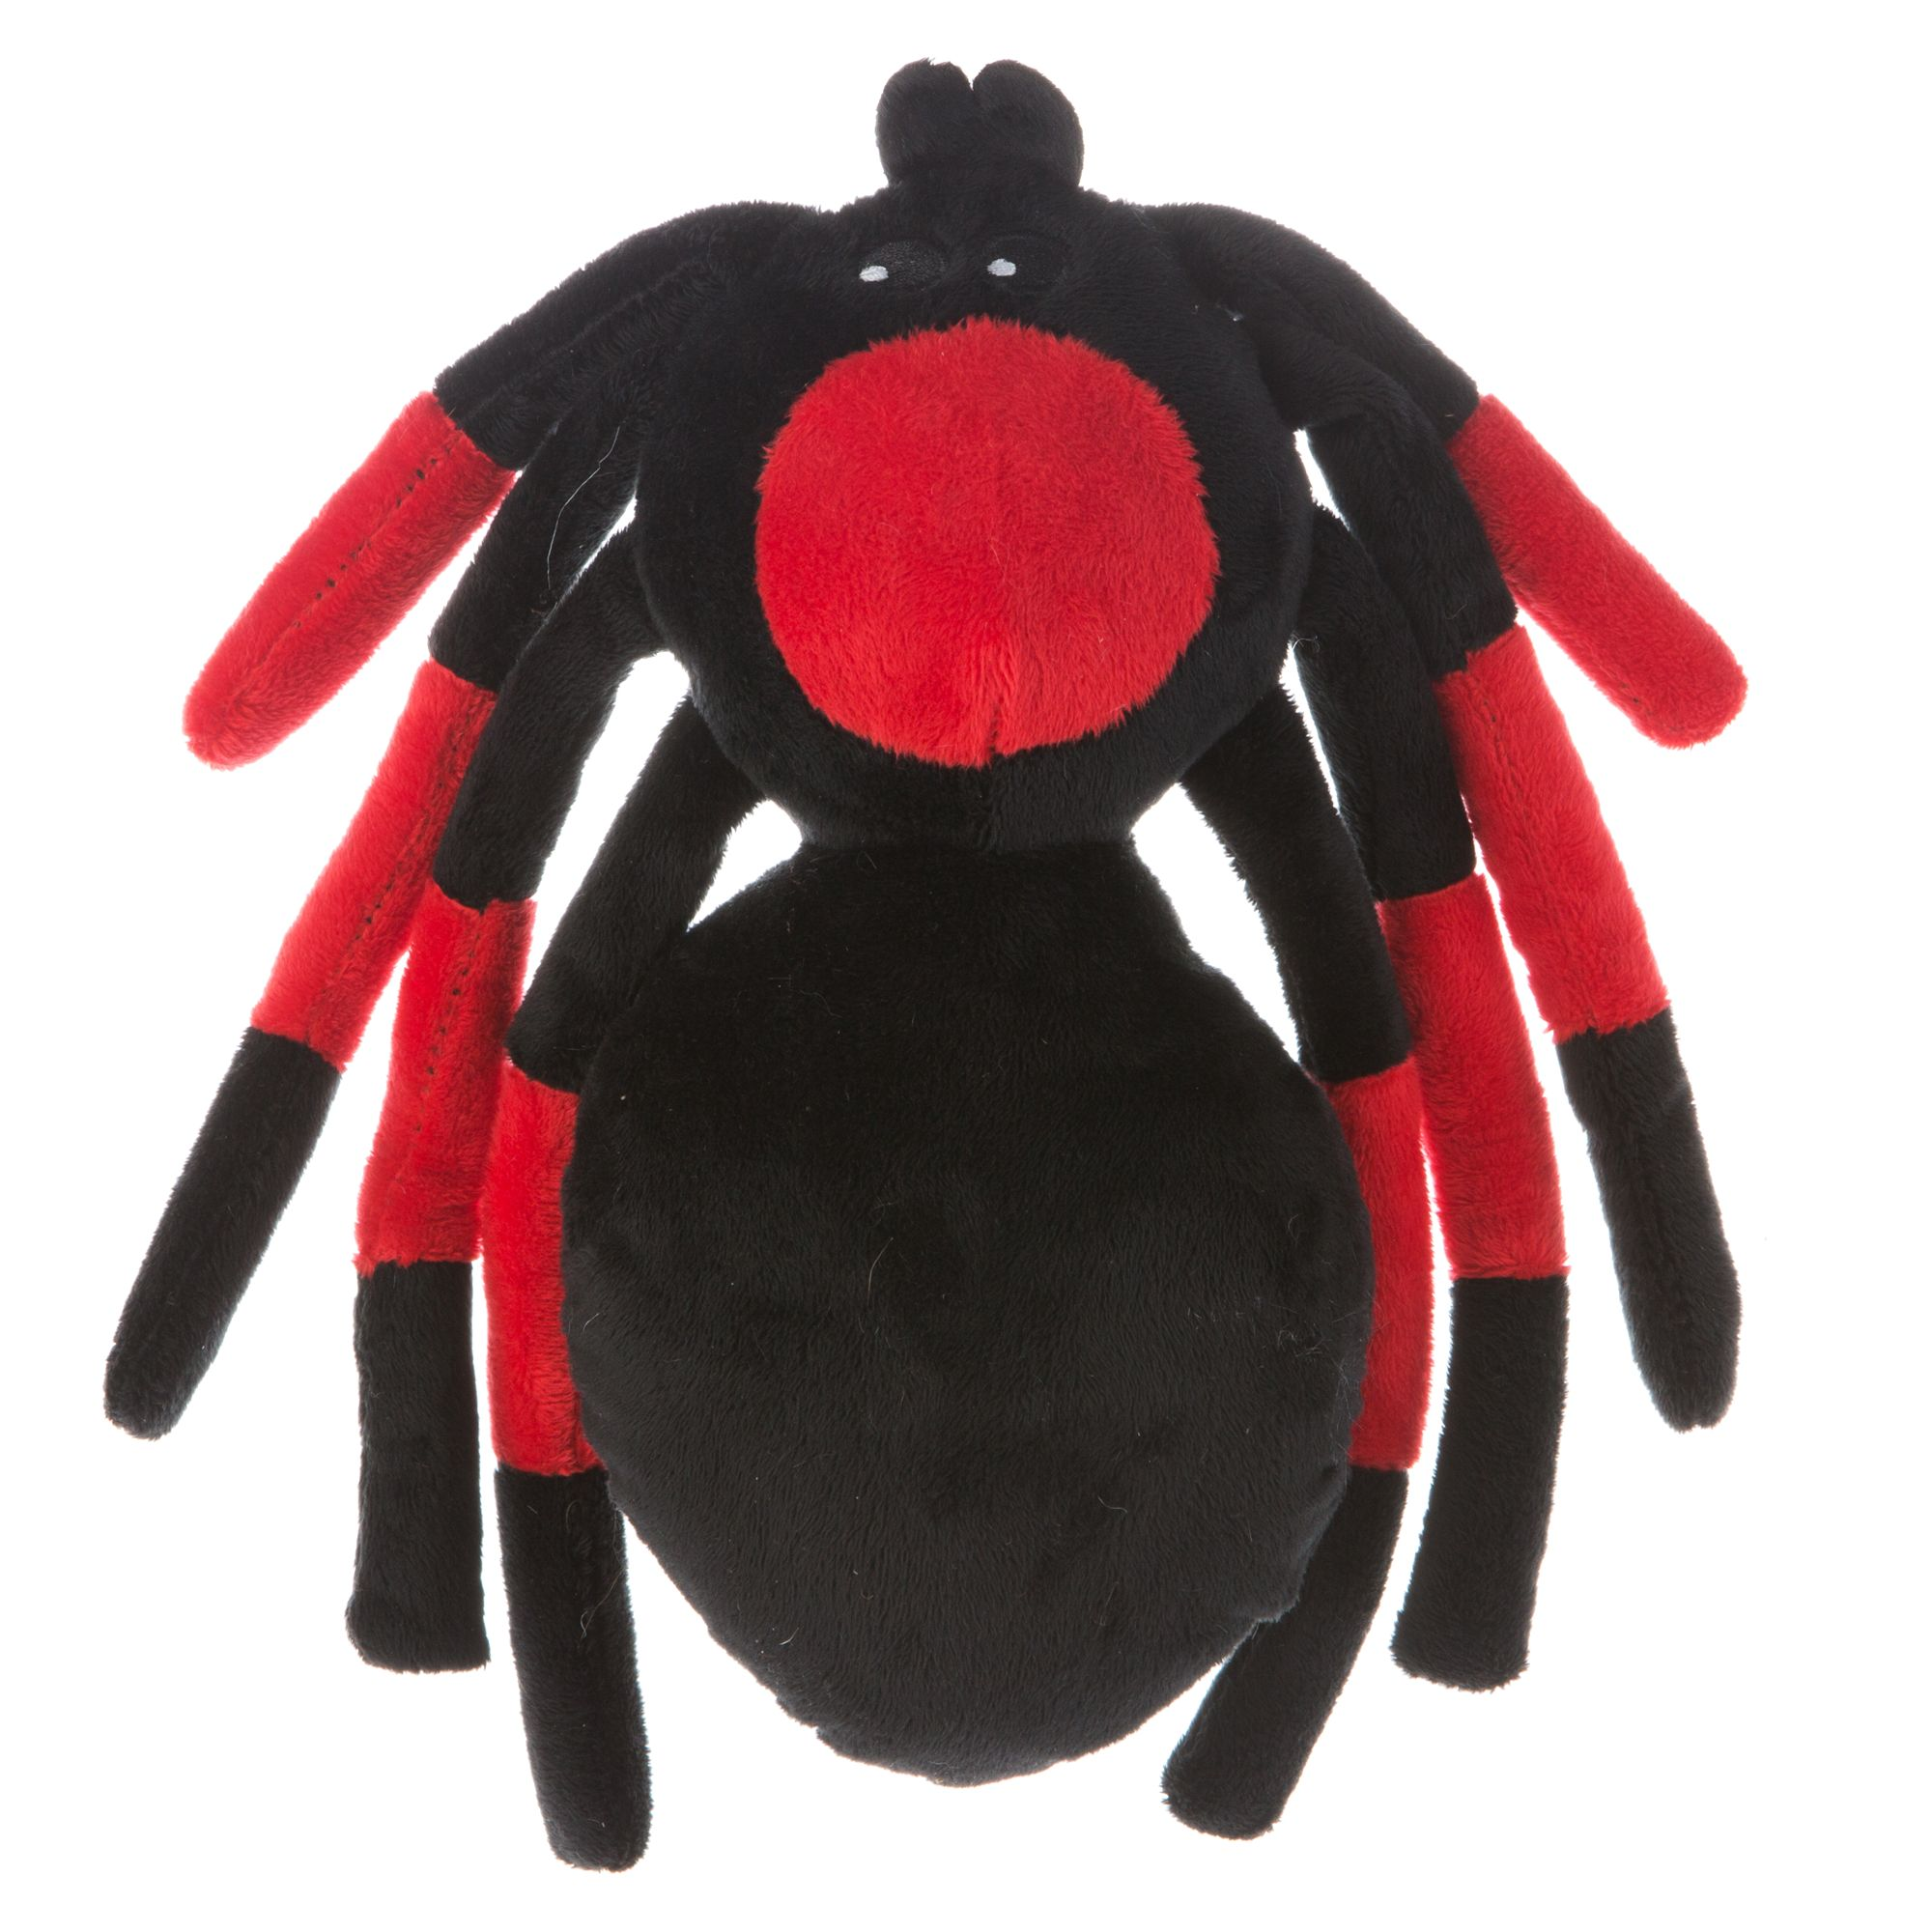 Top Paw® Spider Plush Dog Toy 5252634